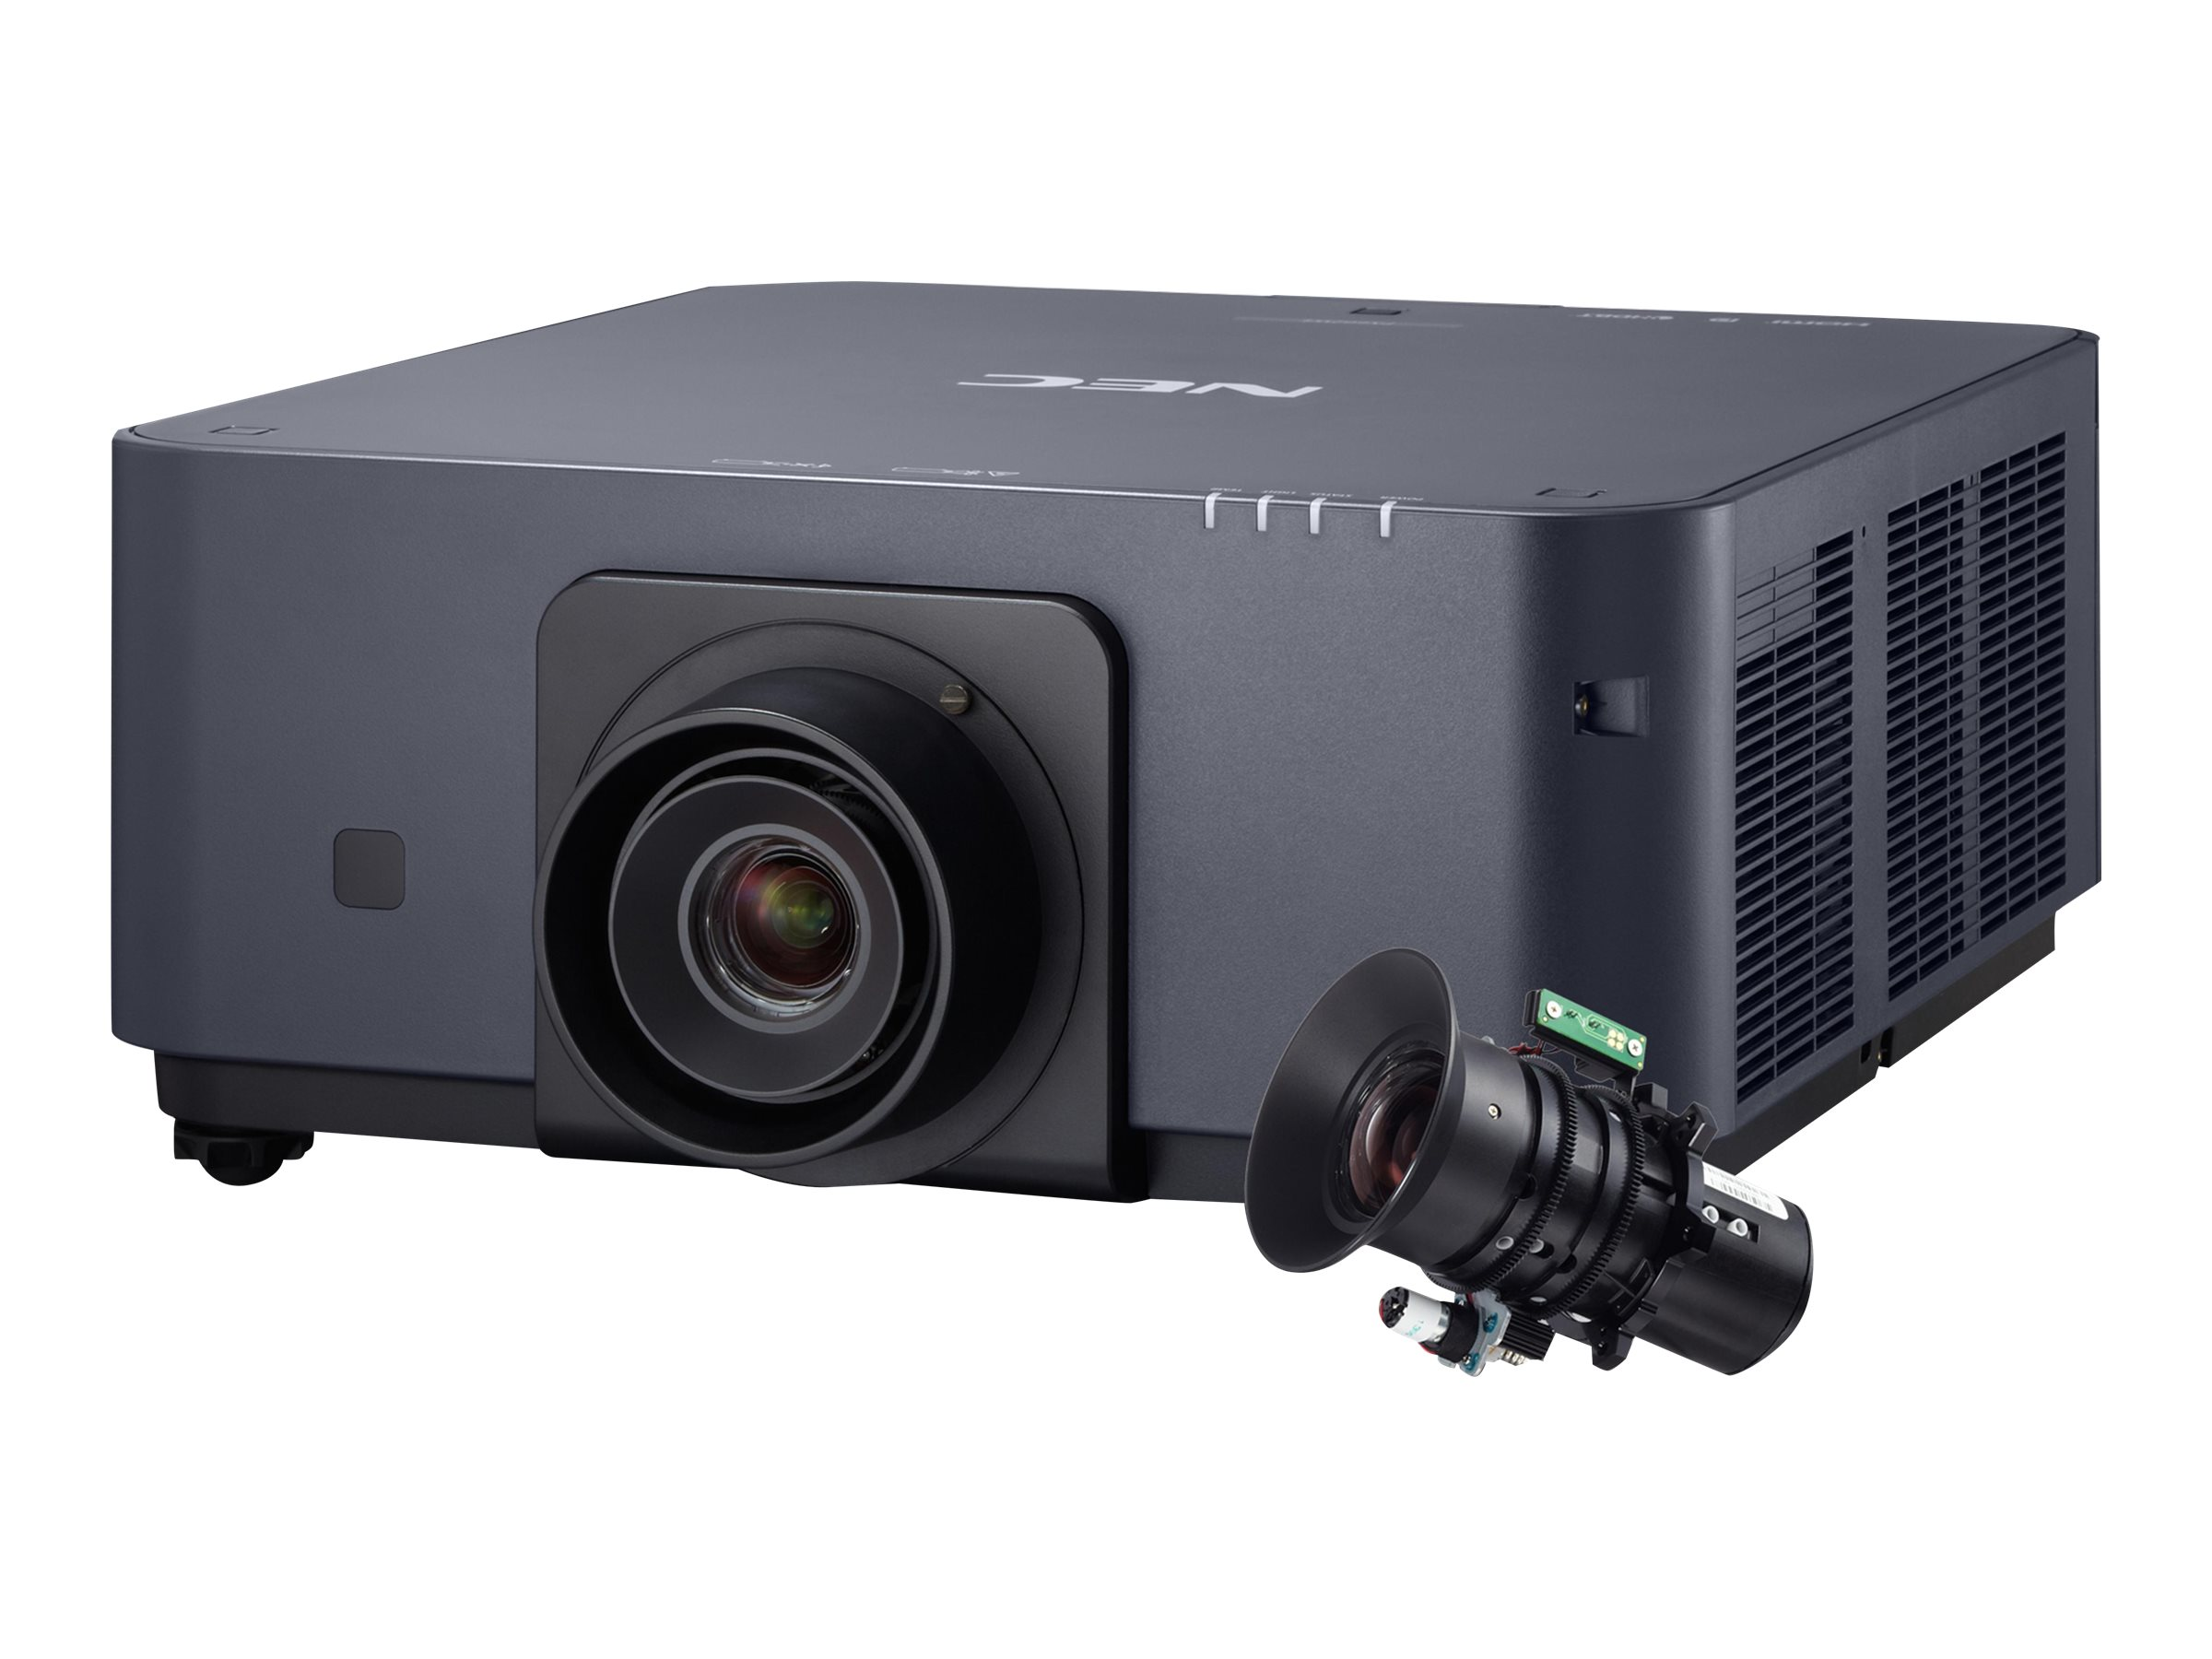 NEC PX602UL WUXGA DLP Projector, 6000 Lumens, Black with Zoom Lens